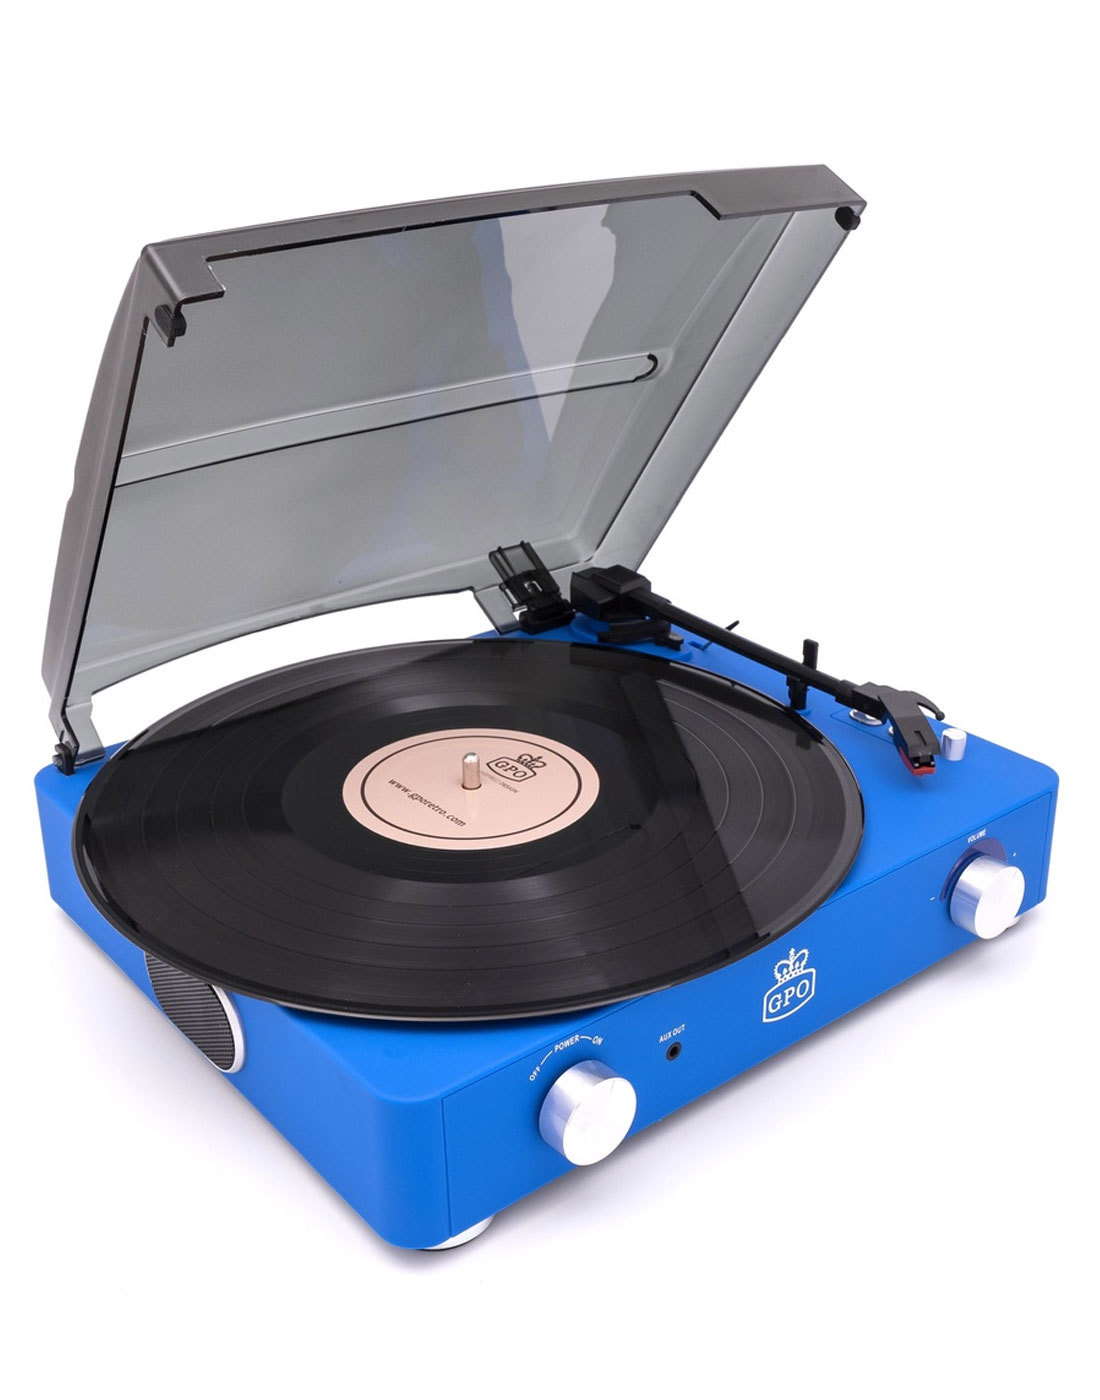 Stylo II GPO RETRO Mod Record Player - Cobalt Blue